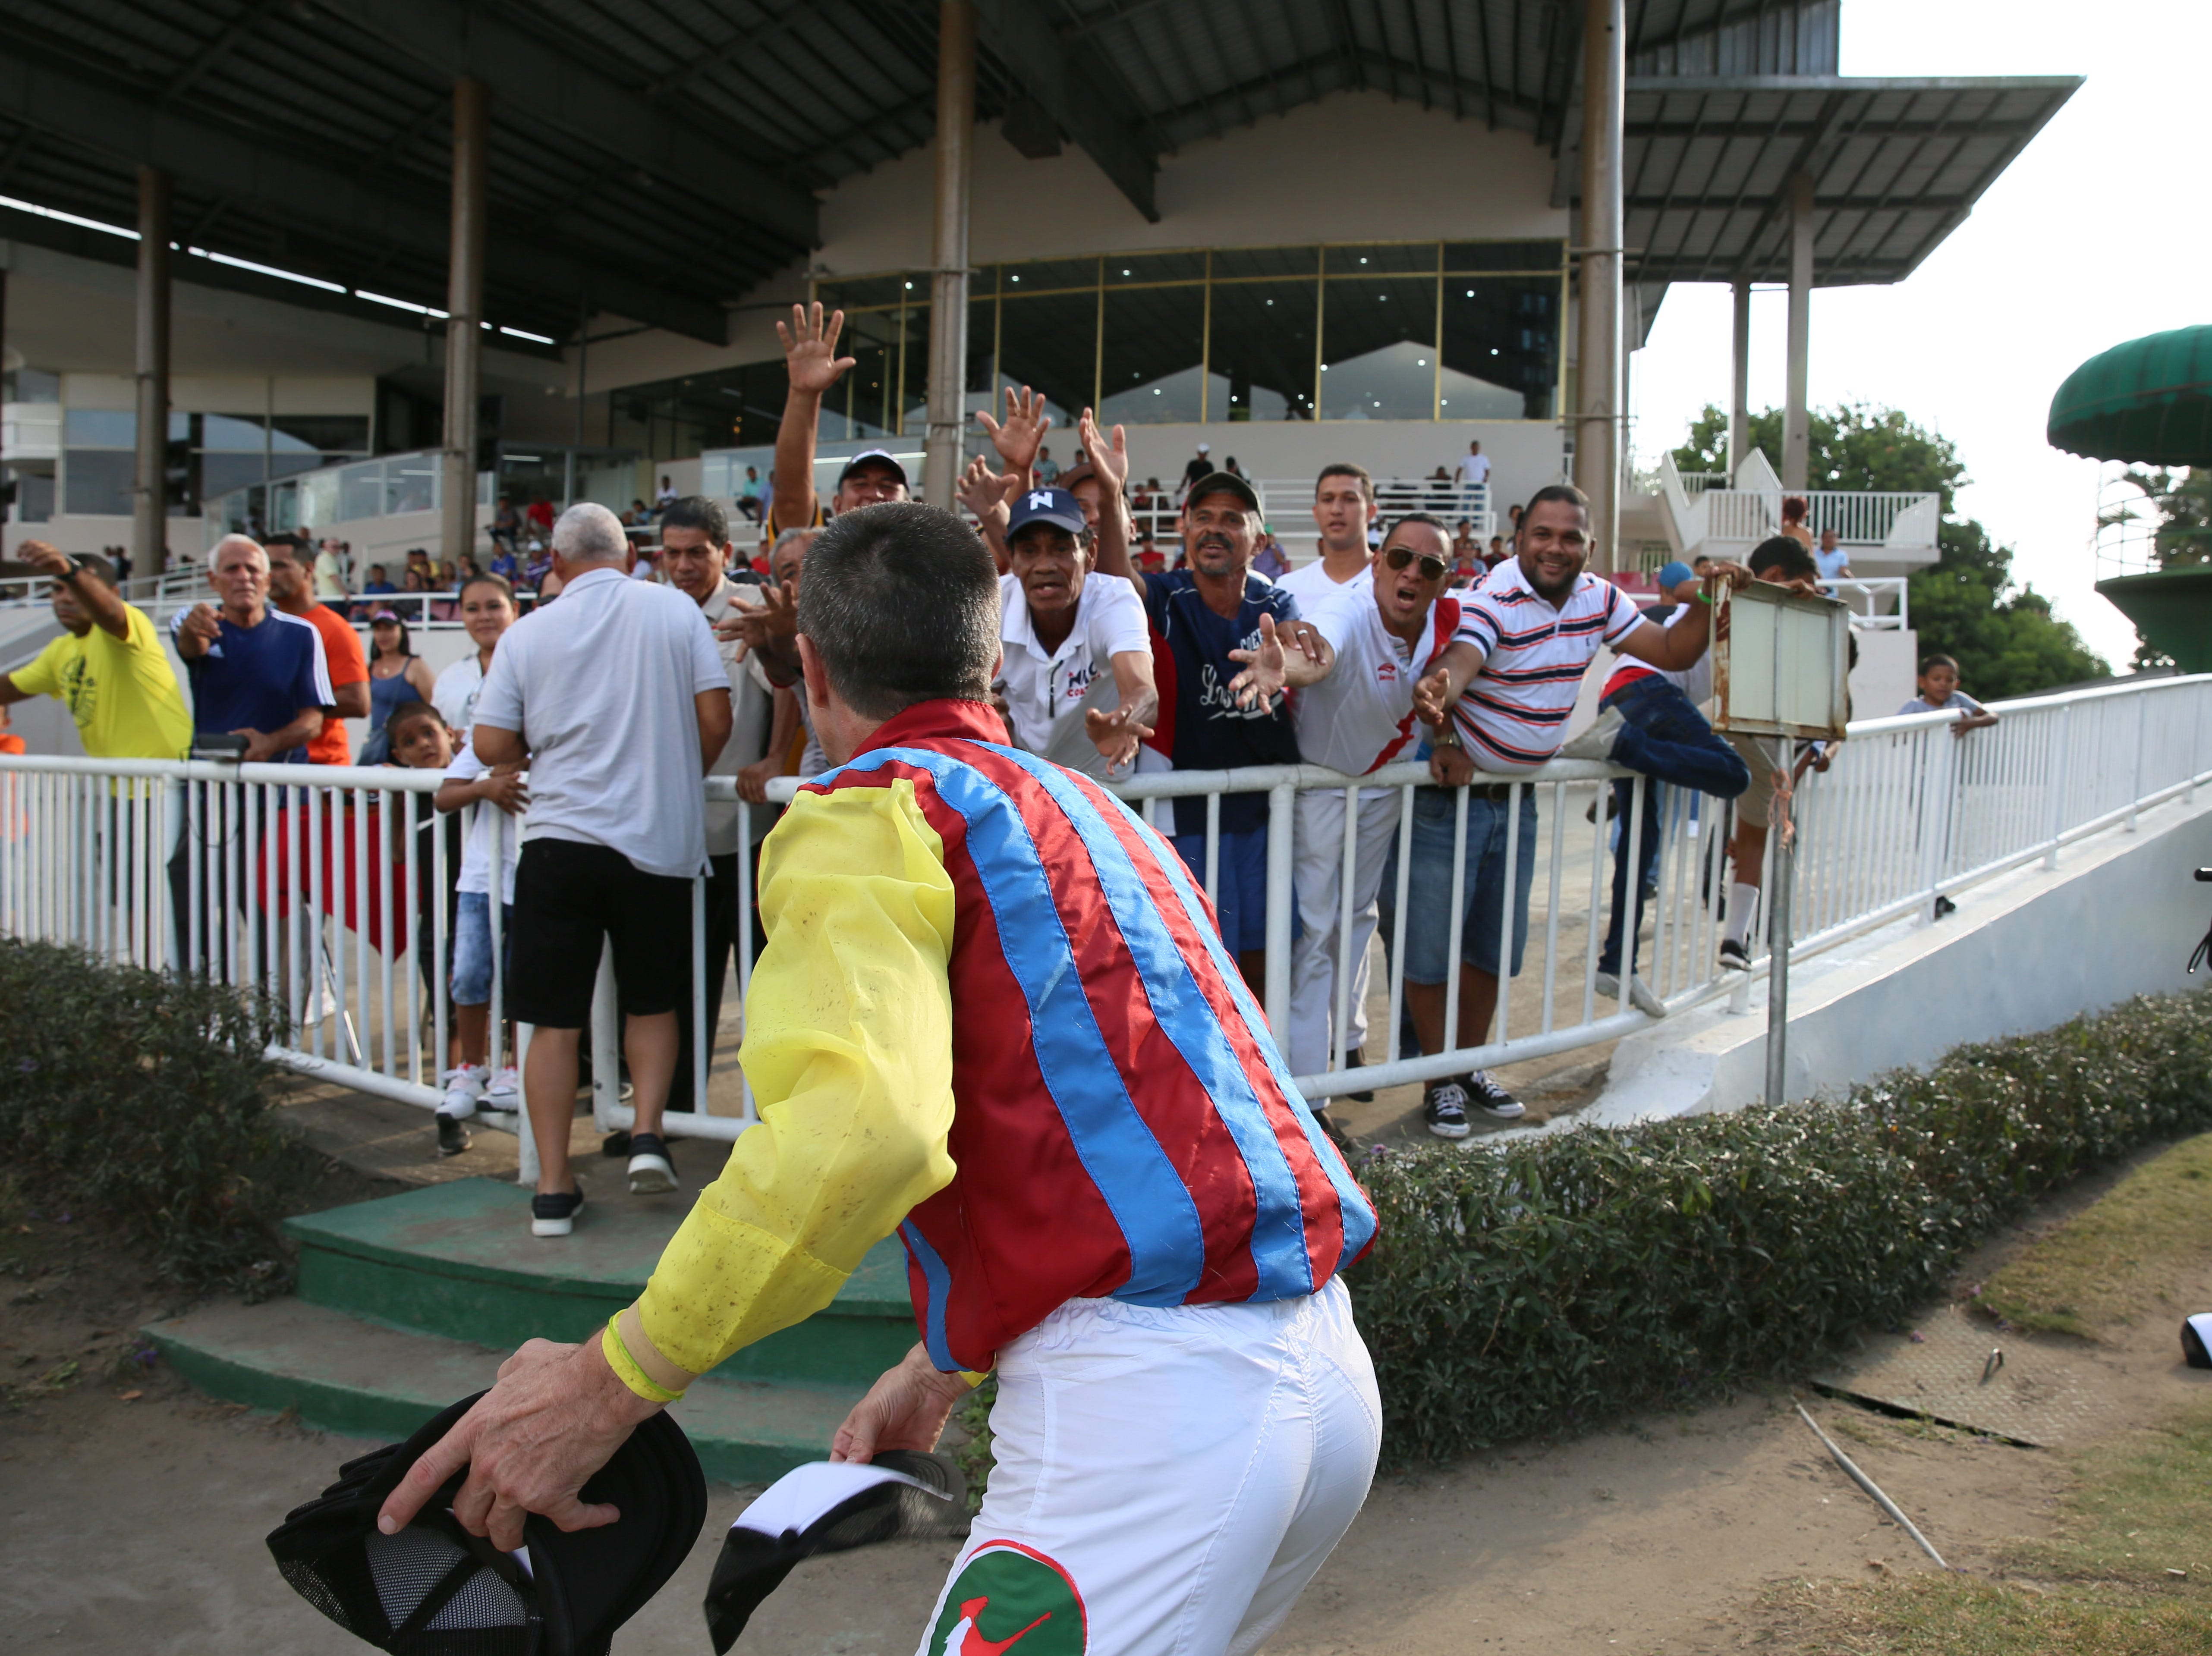 A winning jockey throws a hat to the crowd at Panama's only racetrack